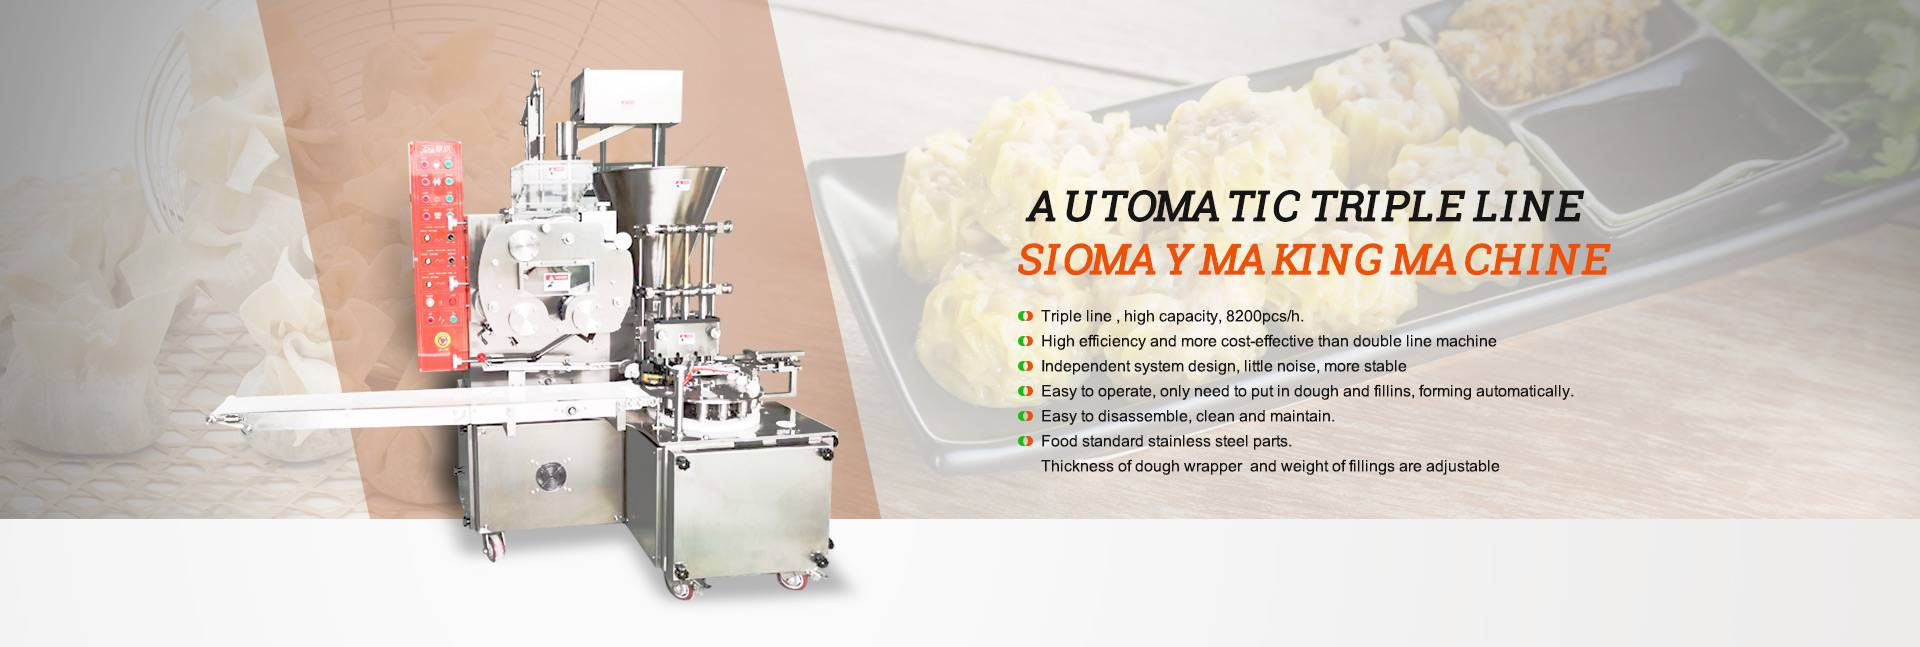 siomay making machine2